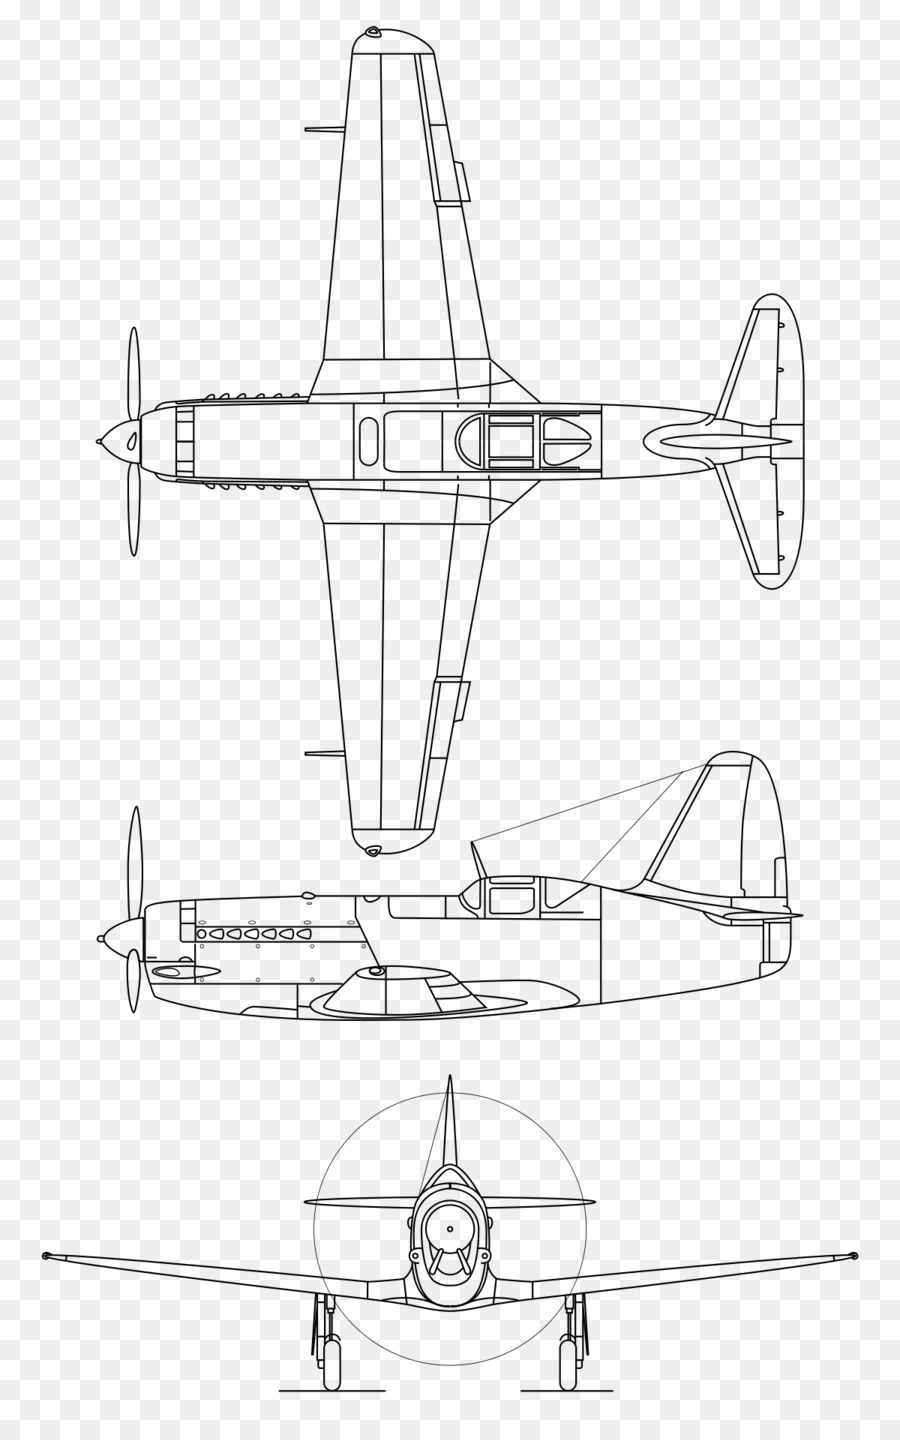 Mikoyan Gurevich I 250 Airplane Aircraft Mig 15 Jetenginediagram Image Jet Engine Diagram Download Drawing